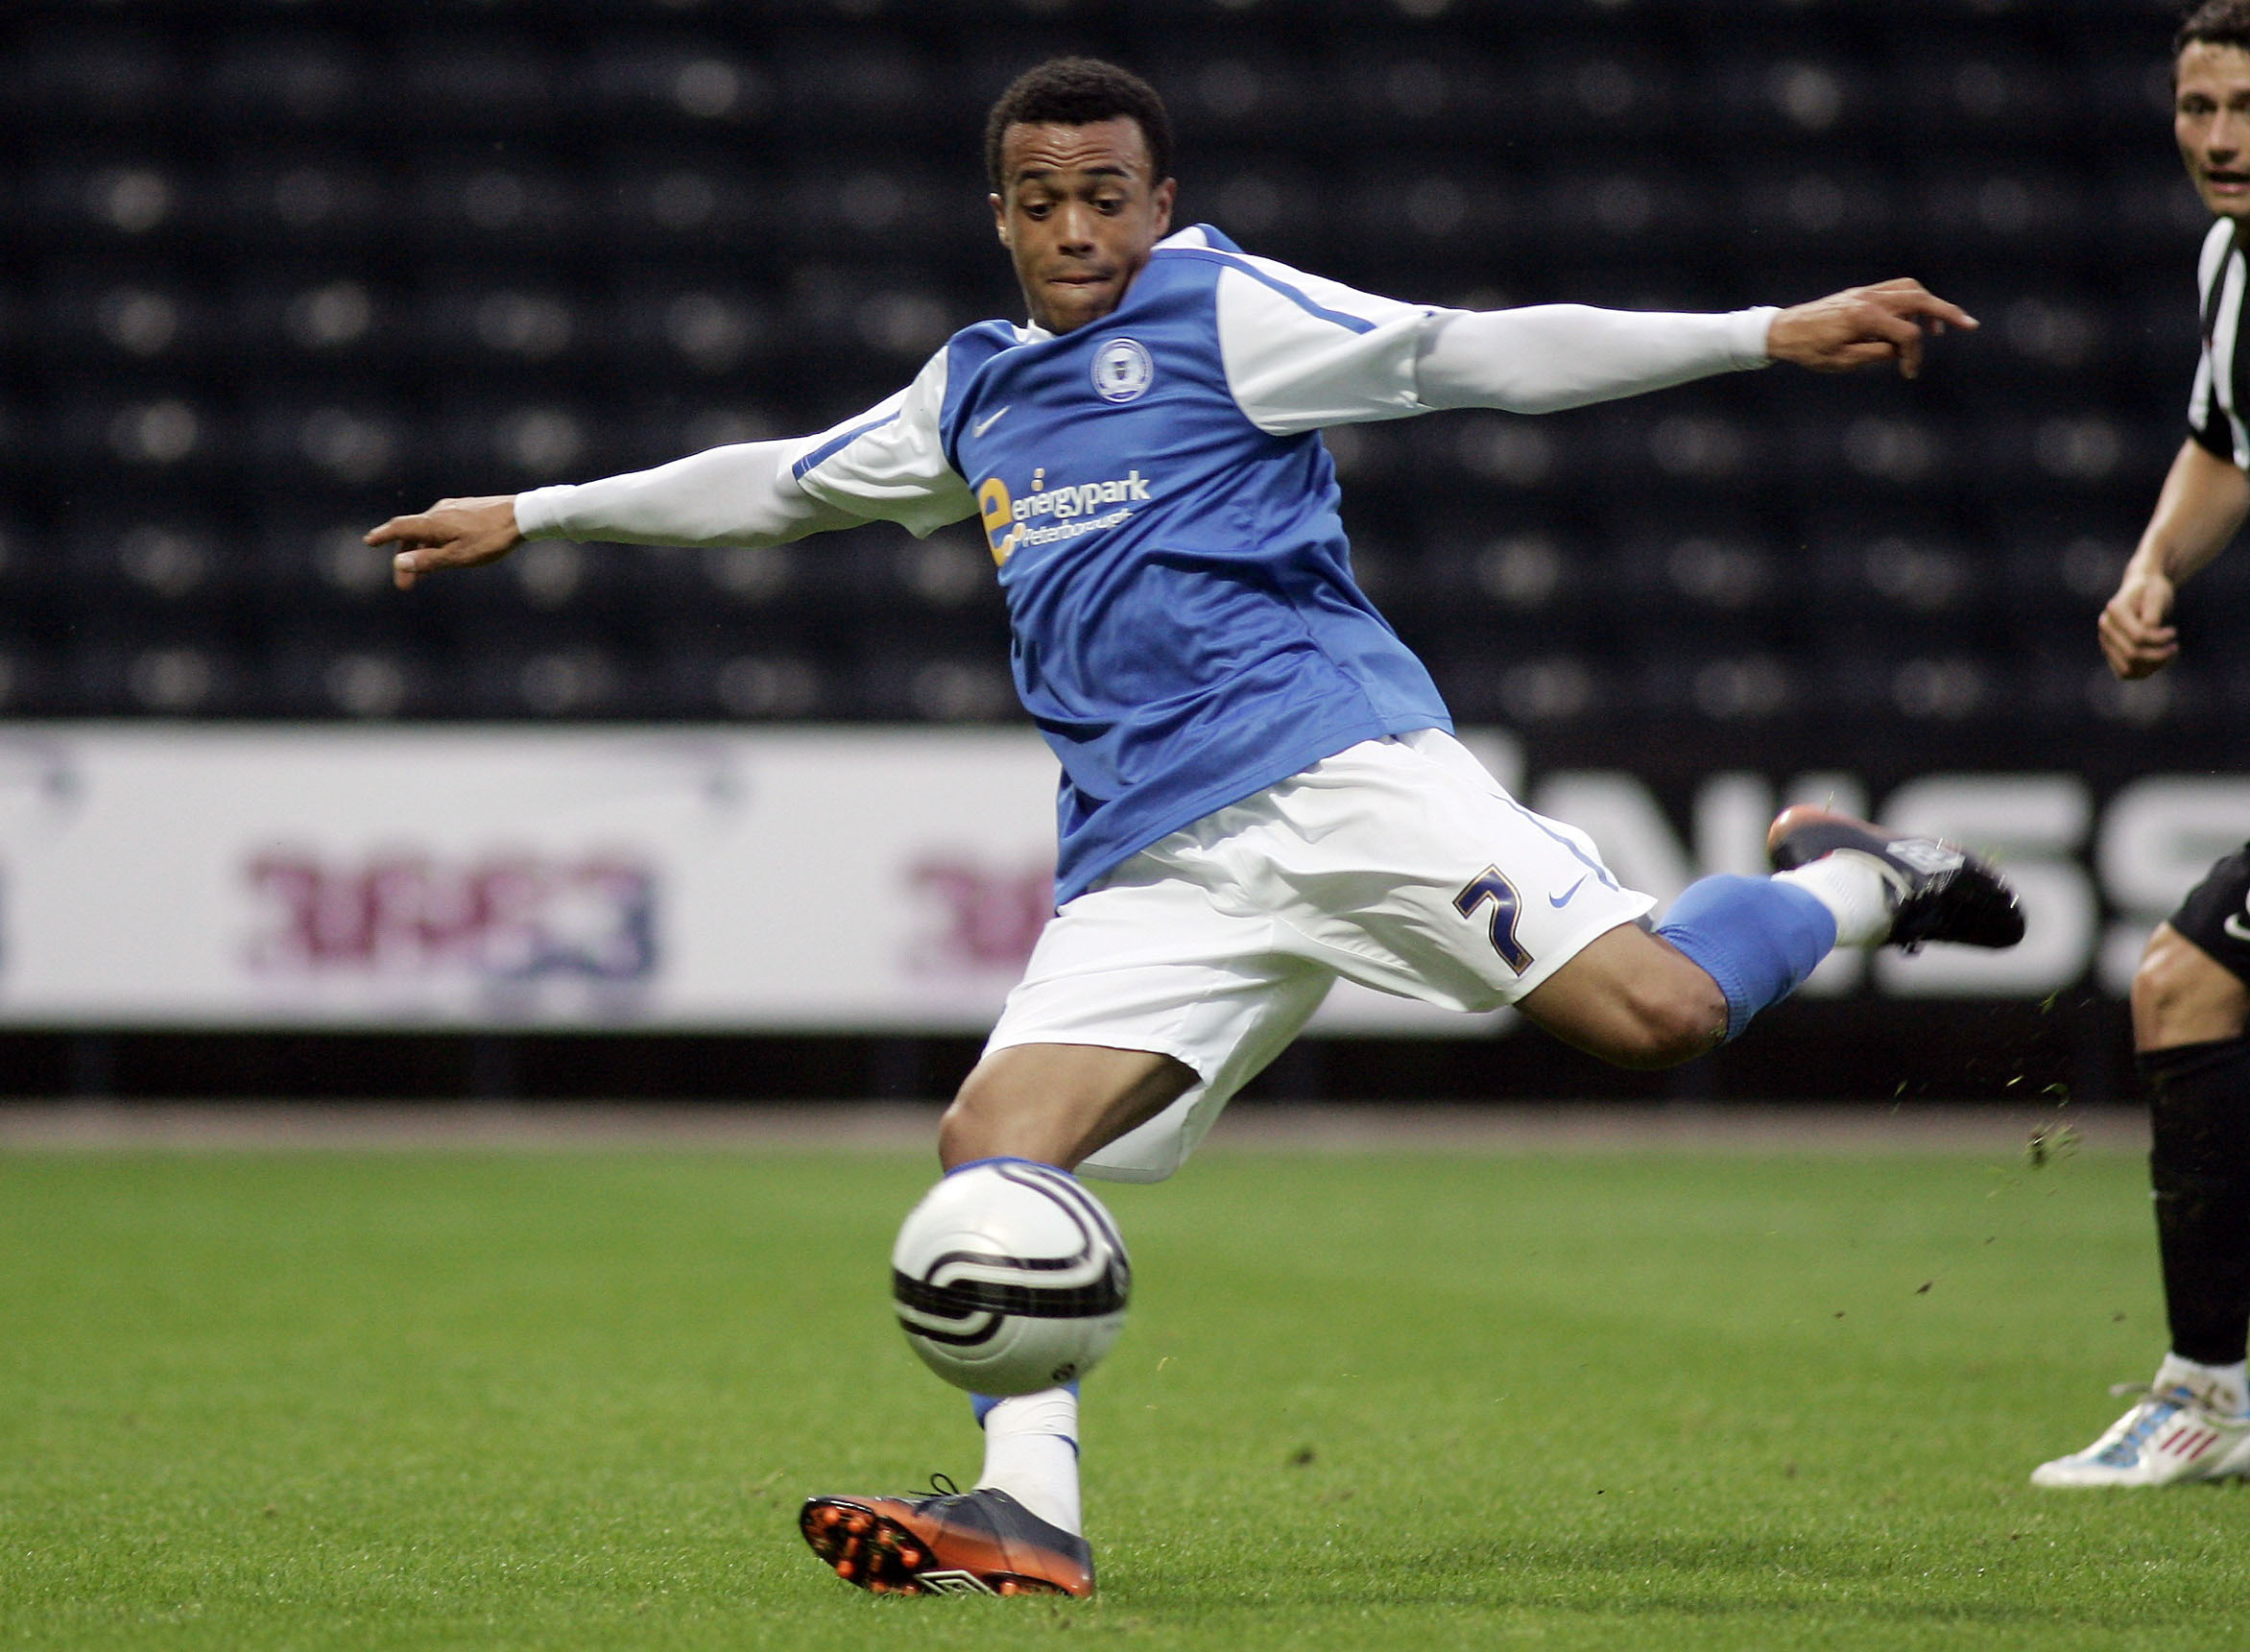 Nicky Ajose taking a shot in pre-season against Notts County